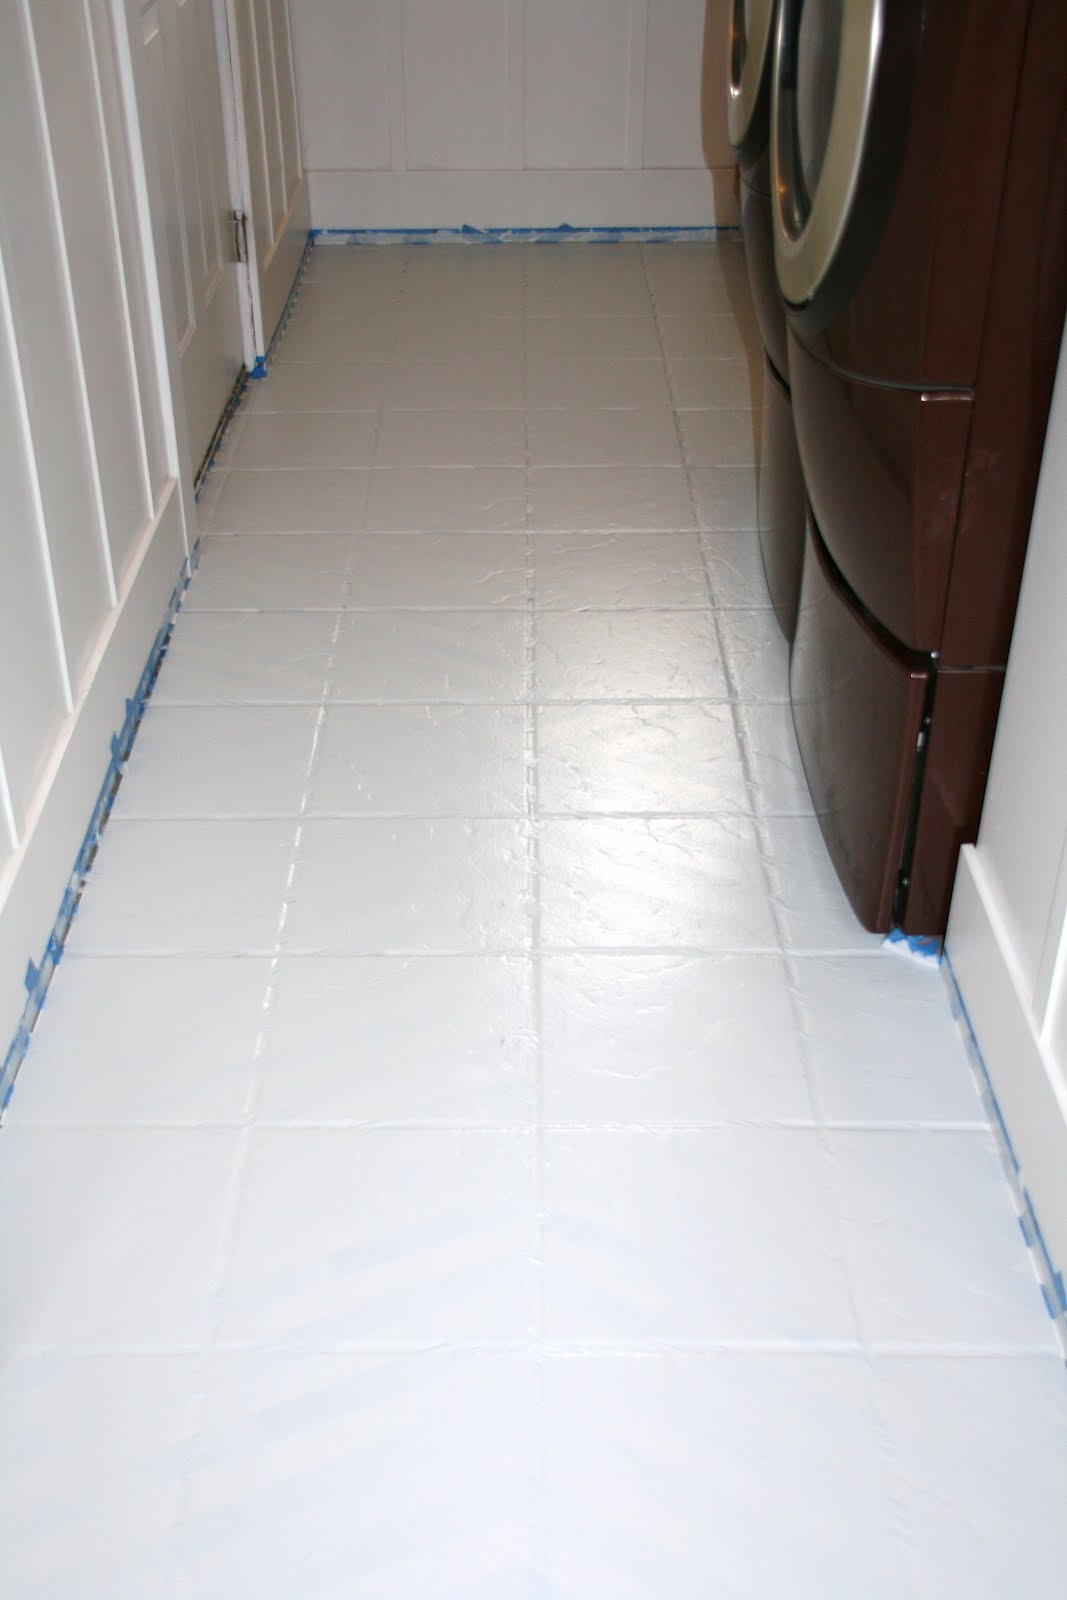 Painting Ceramic Floor Tile In Bathroom : How to paint tile floors a tutorial love stitched